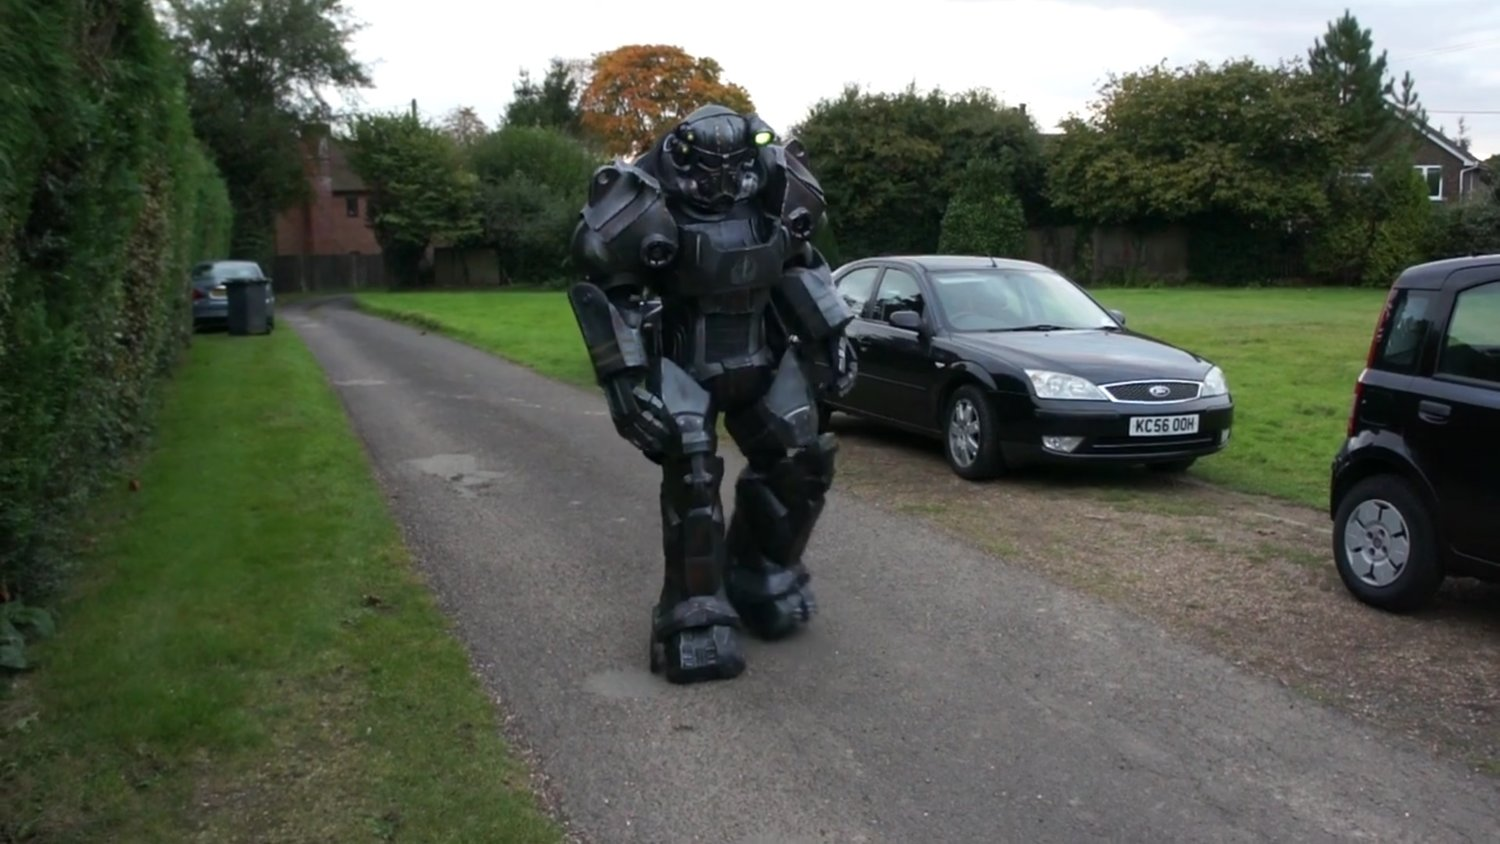 You Gotta See This Epic FALLOUT Power Armor In Action!